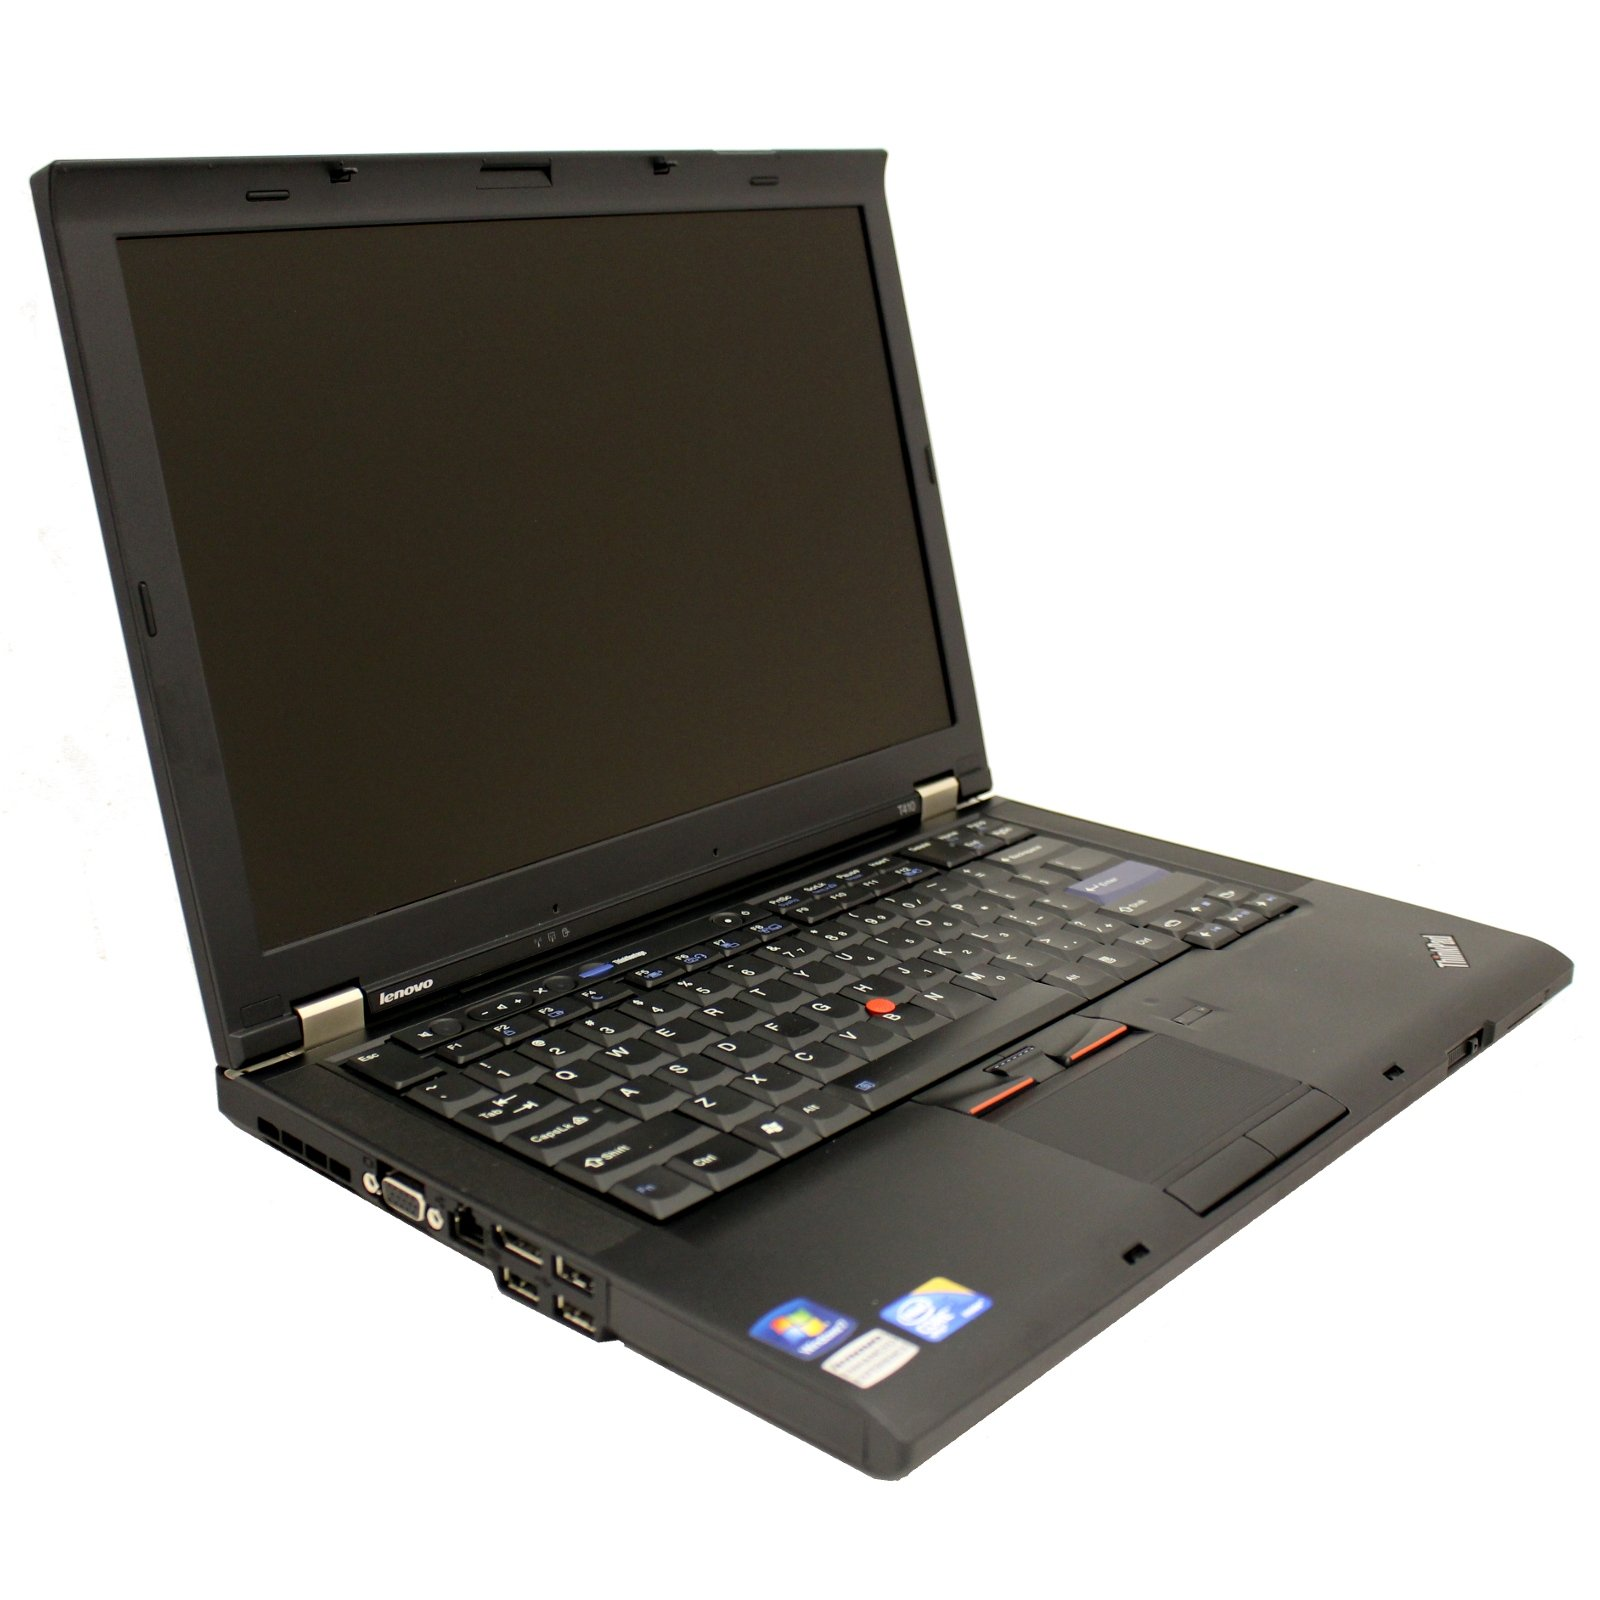 "Refurbished Lenovo ThinkPad T410 14.1"" Notebook Laptop i5-520M 2.4GHz 8GB RAM 120GB SSD DVD-RW WiFi Windows 7 Professional 64-bit"